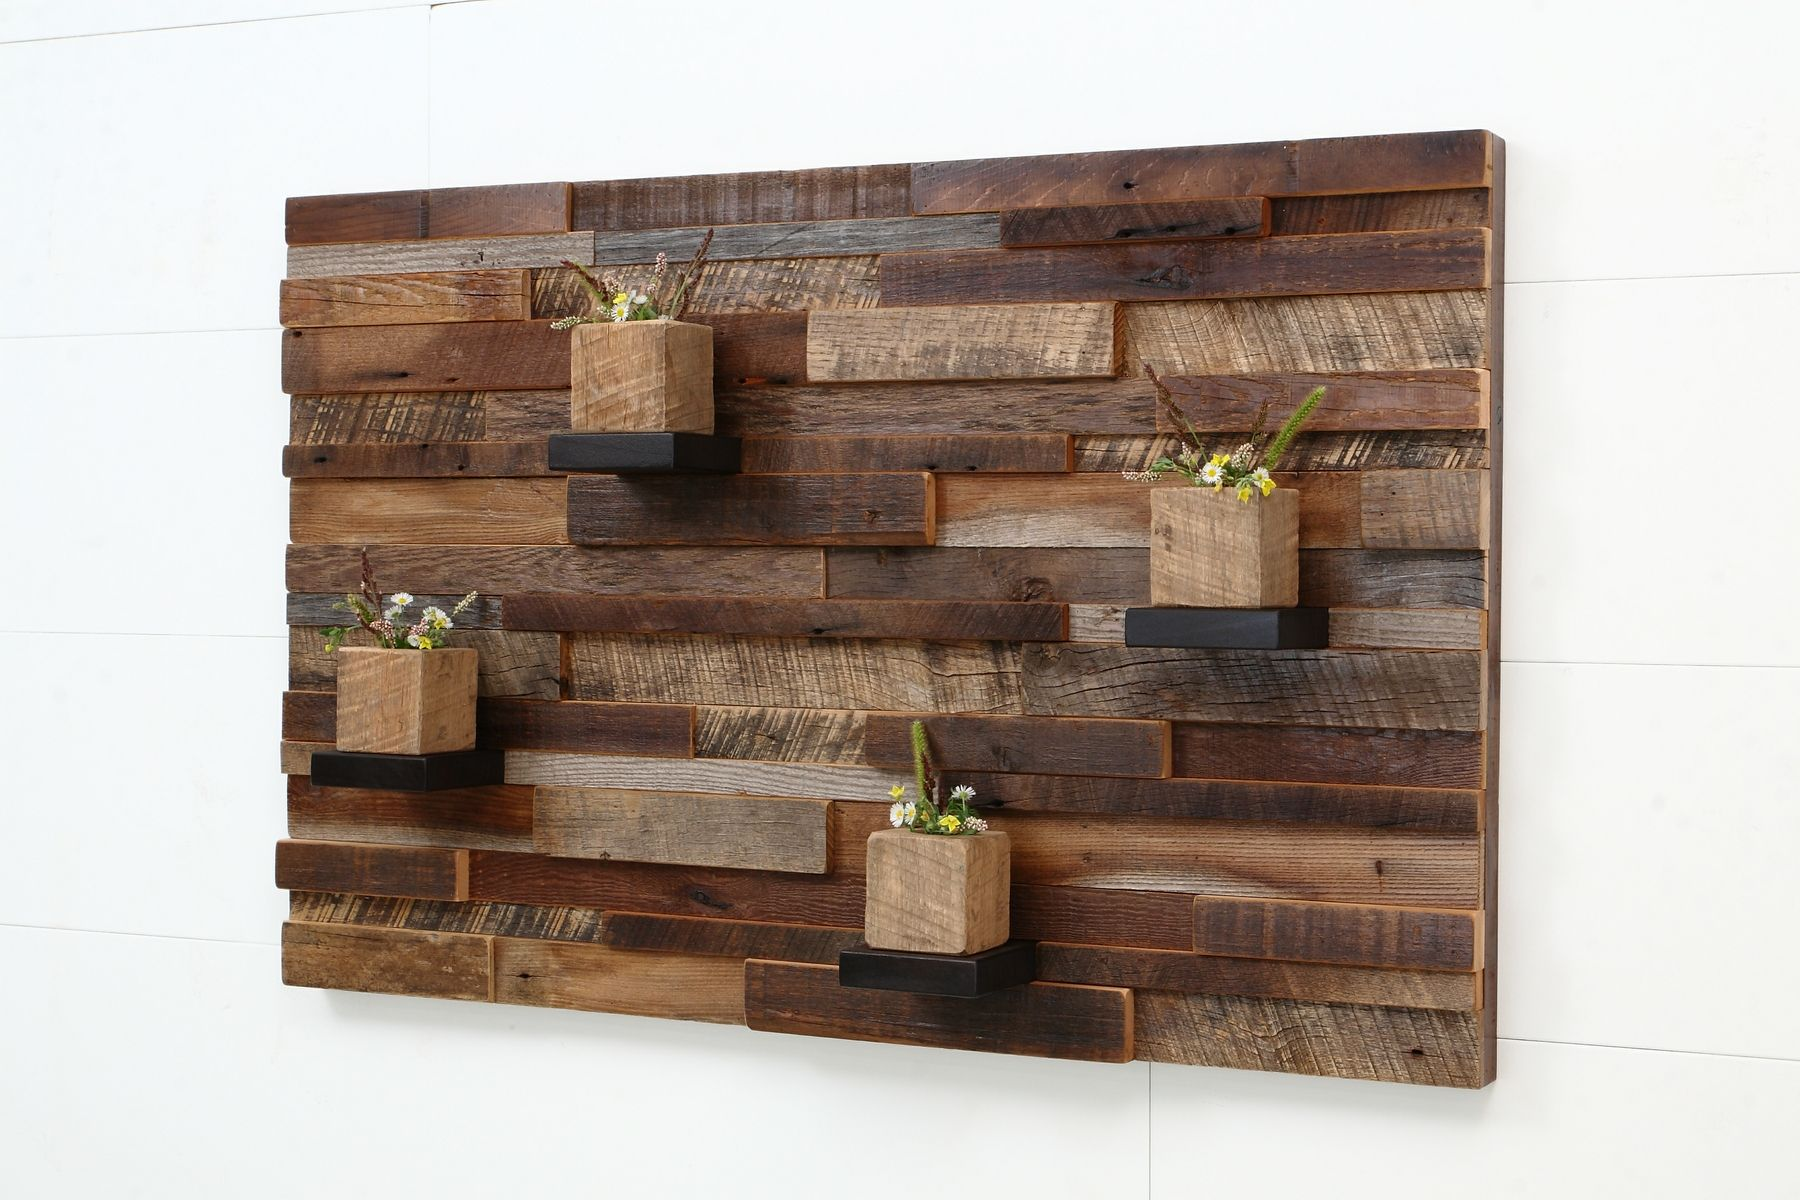 Reclaimed Wooden Pallet Wall Art Recycled Crafts